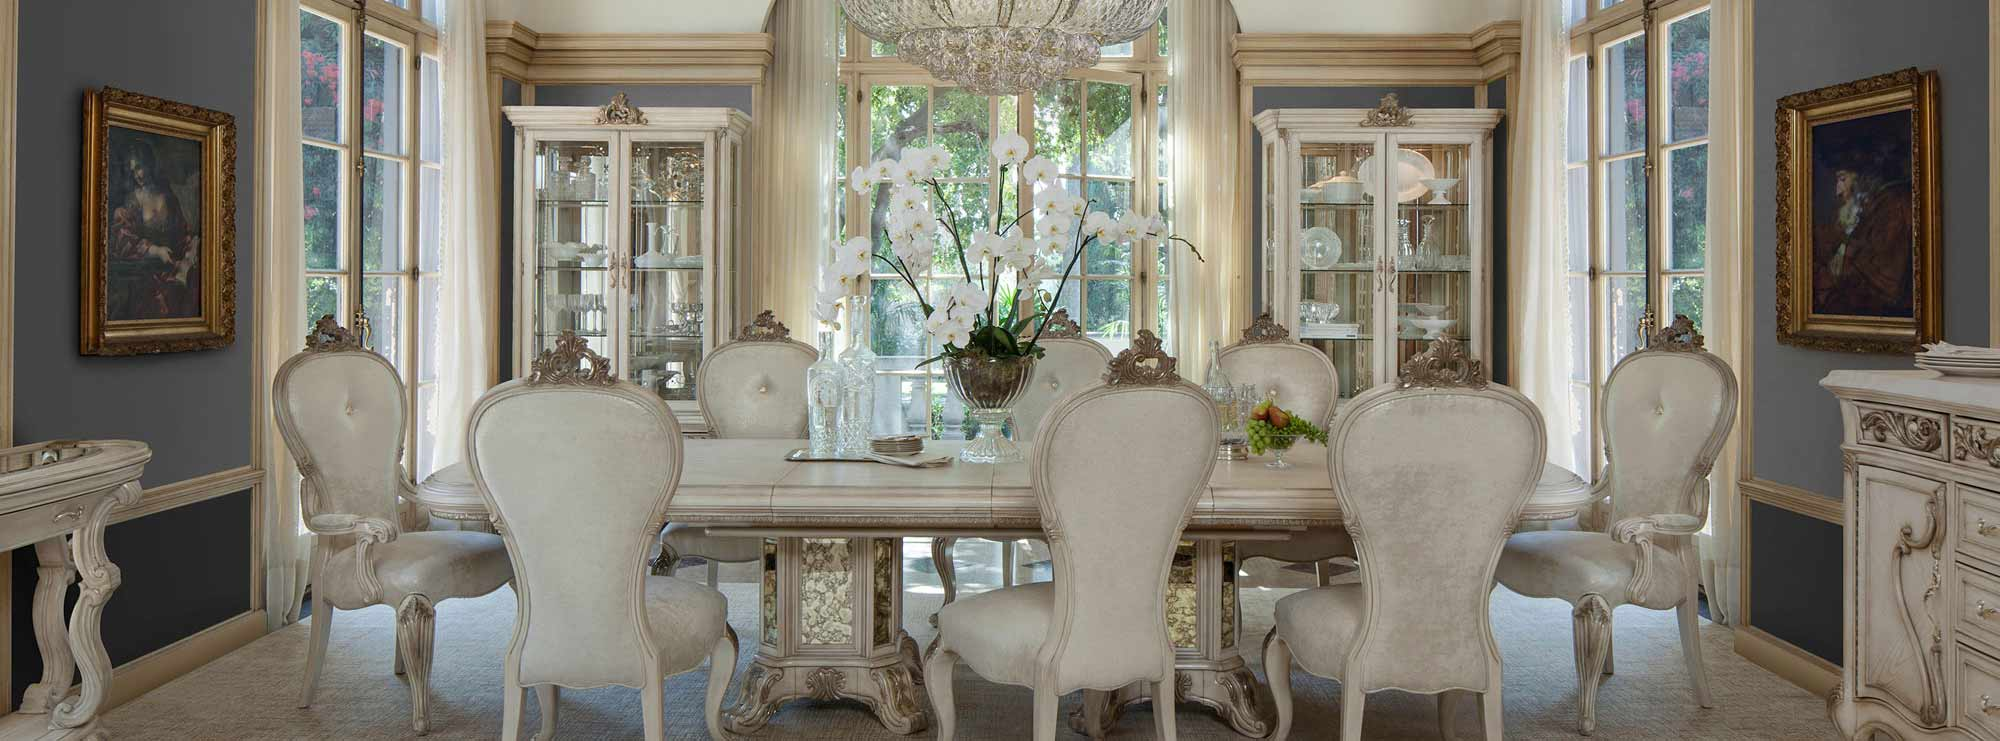 The Platine de Royale dining room suite